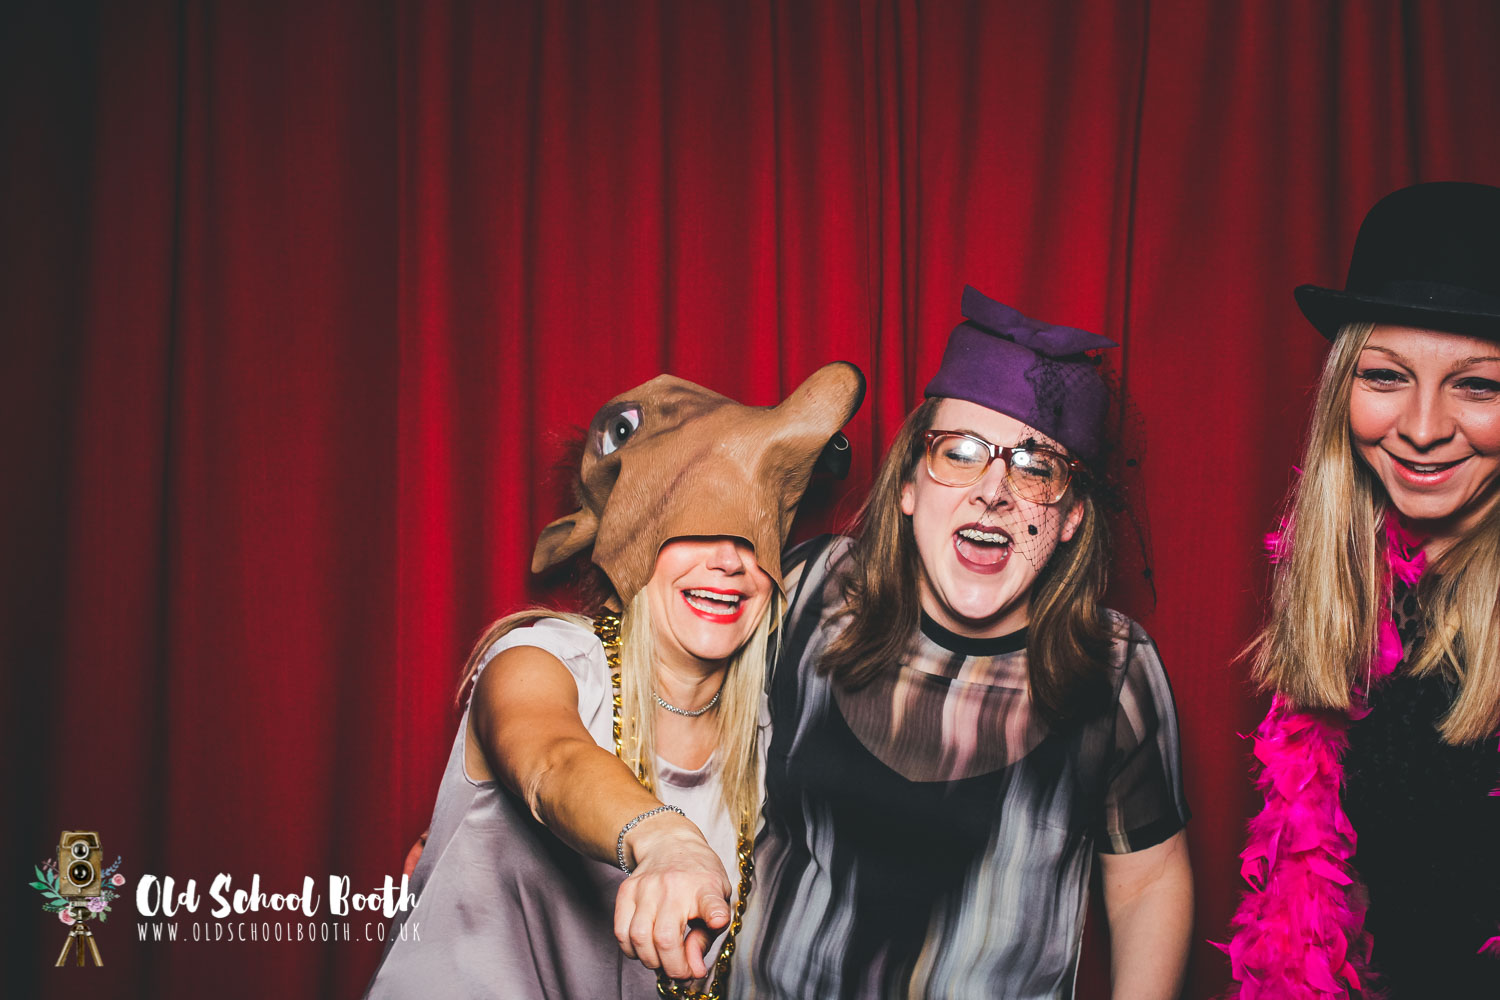 laughing photo booth